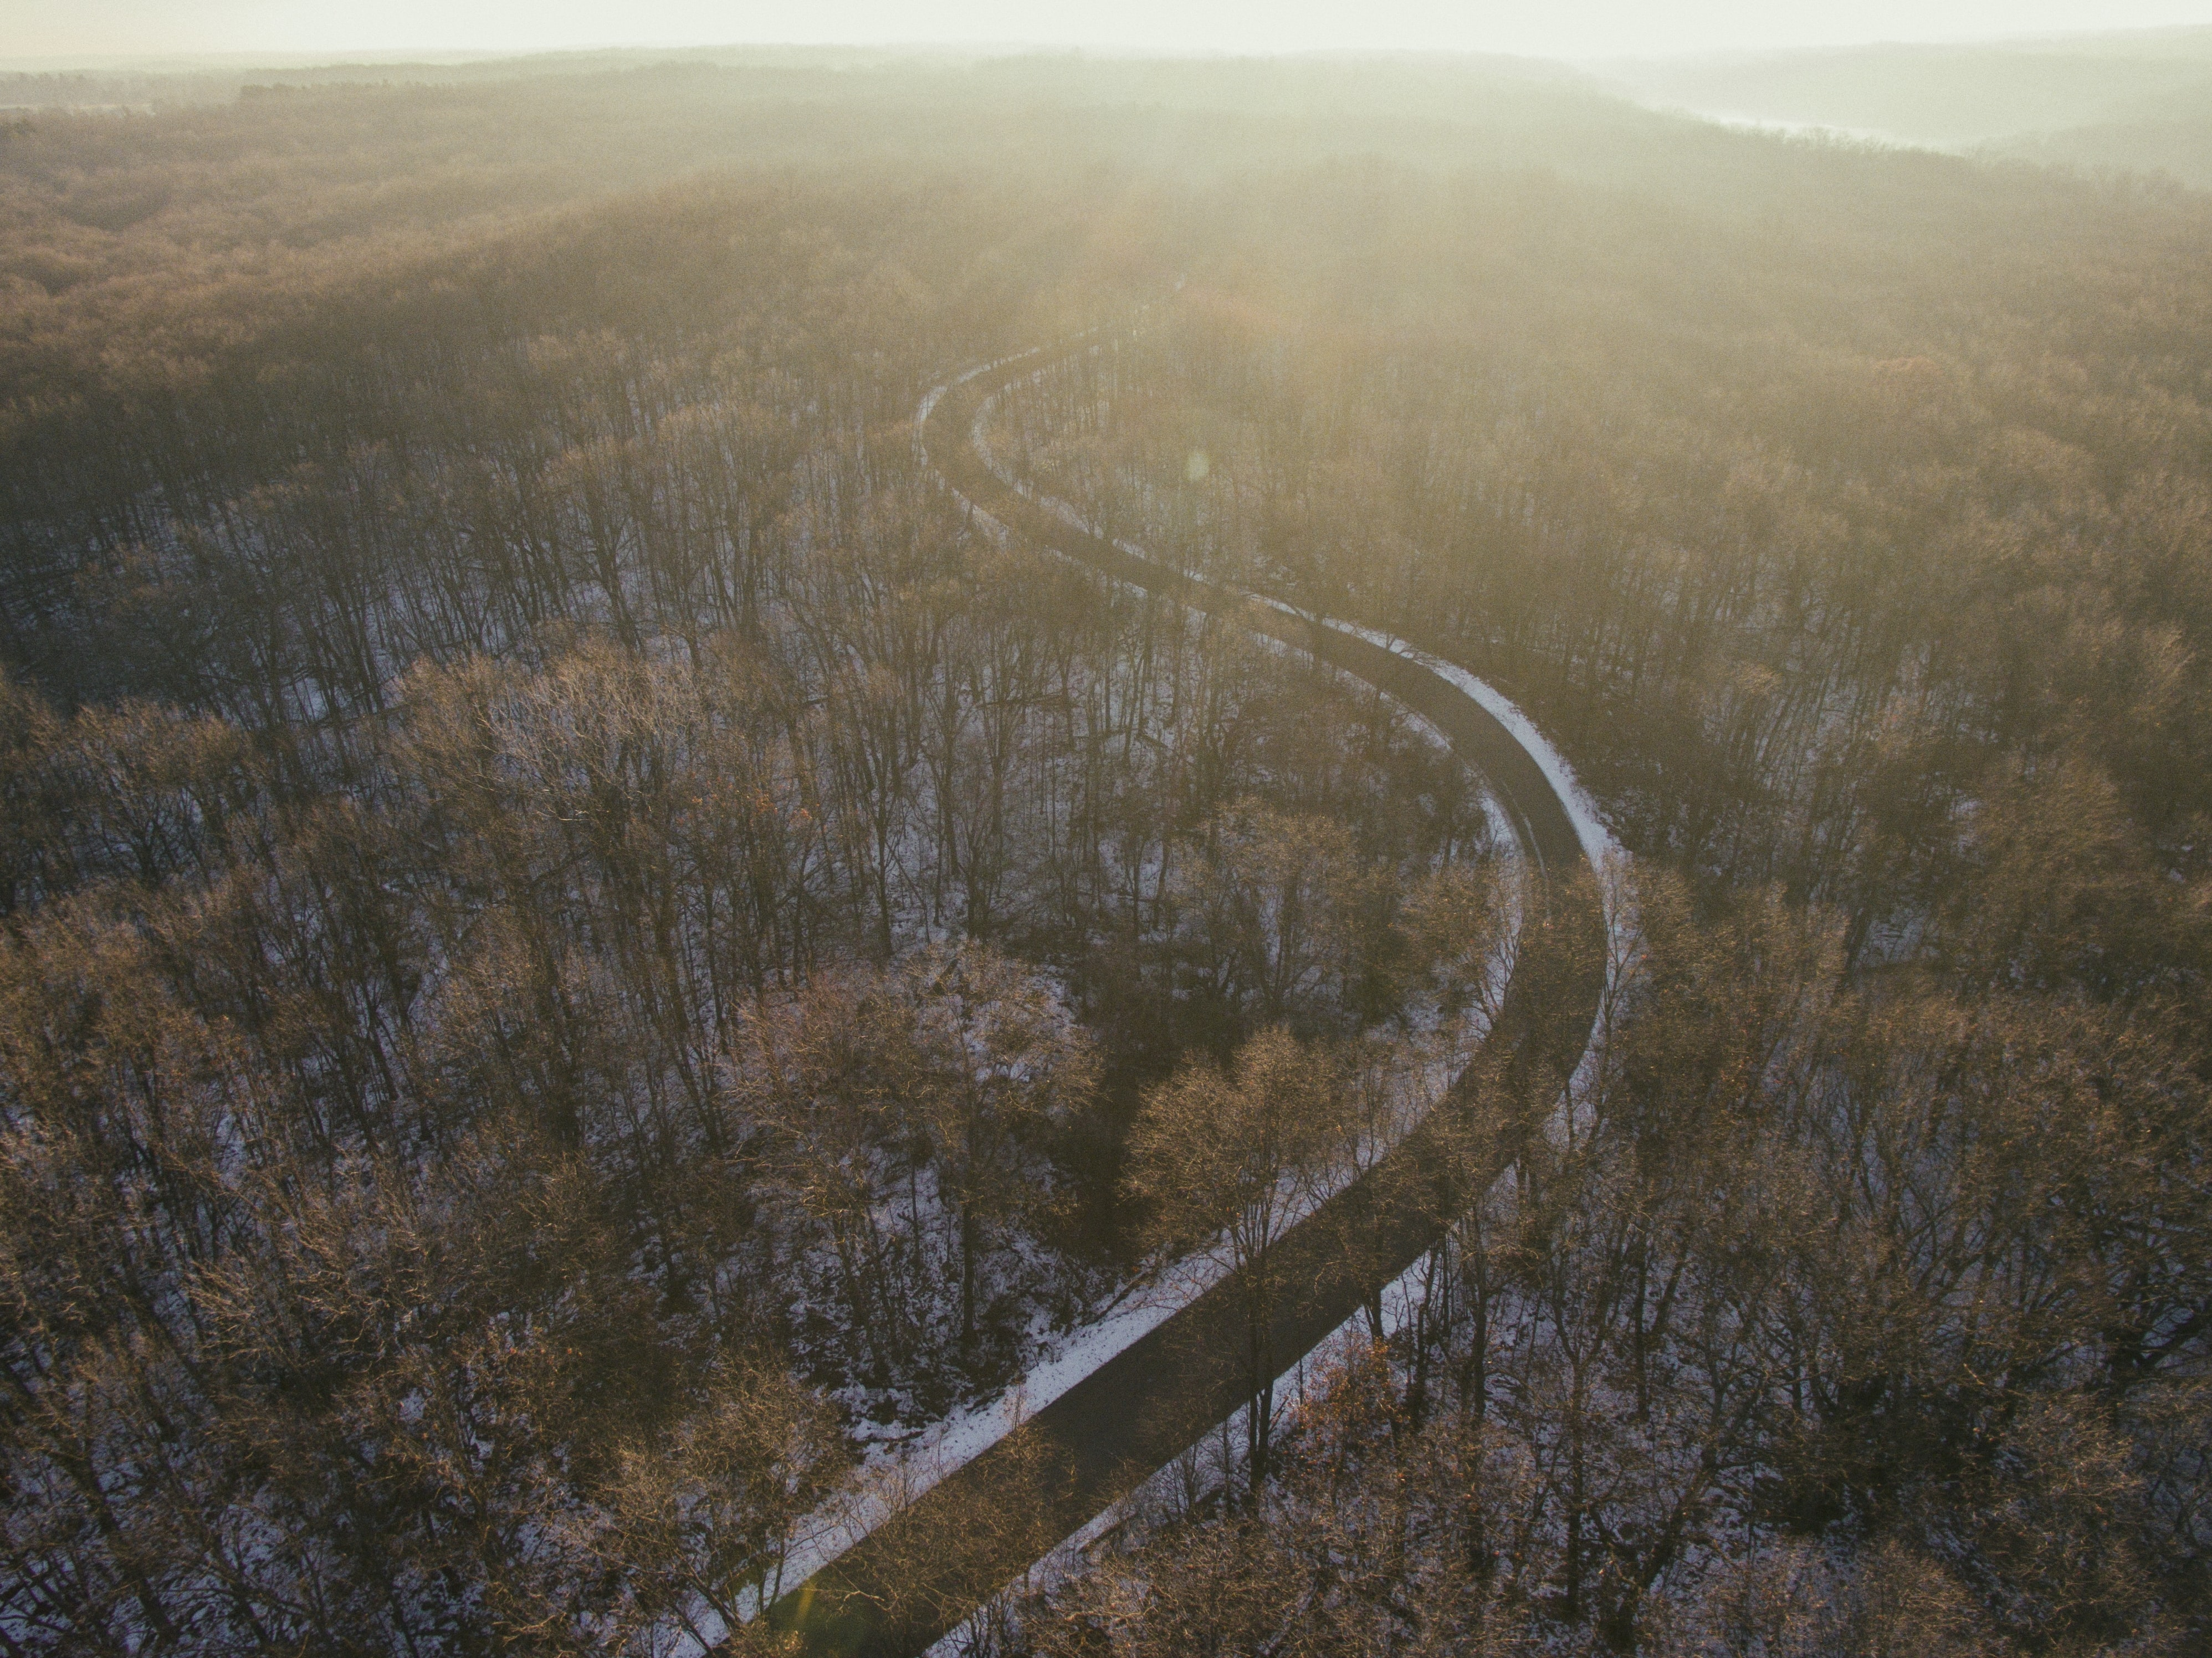 aerial view photography of road surrounded of trees